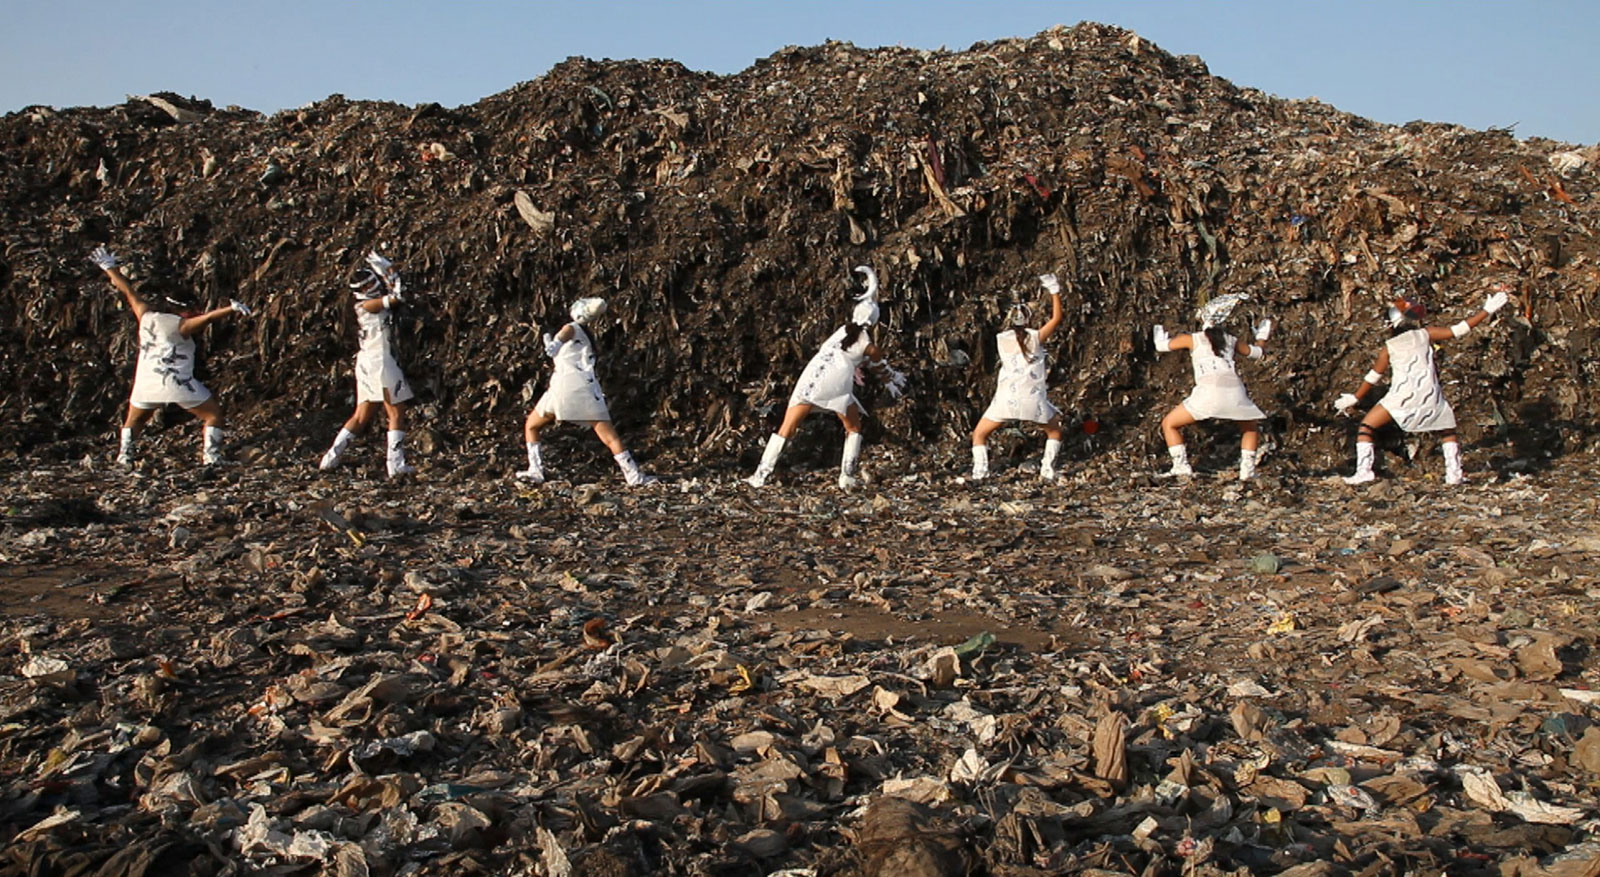 Tejal Shah, 'Between the Waves - Landfill Dance,' HD Video, 2012. Courtesy of the artist, Barbara Gross Galerie, Munich, and Project 88, Mumbai.